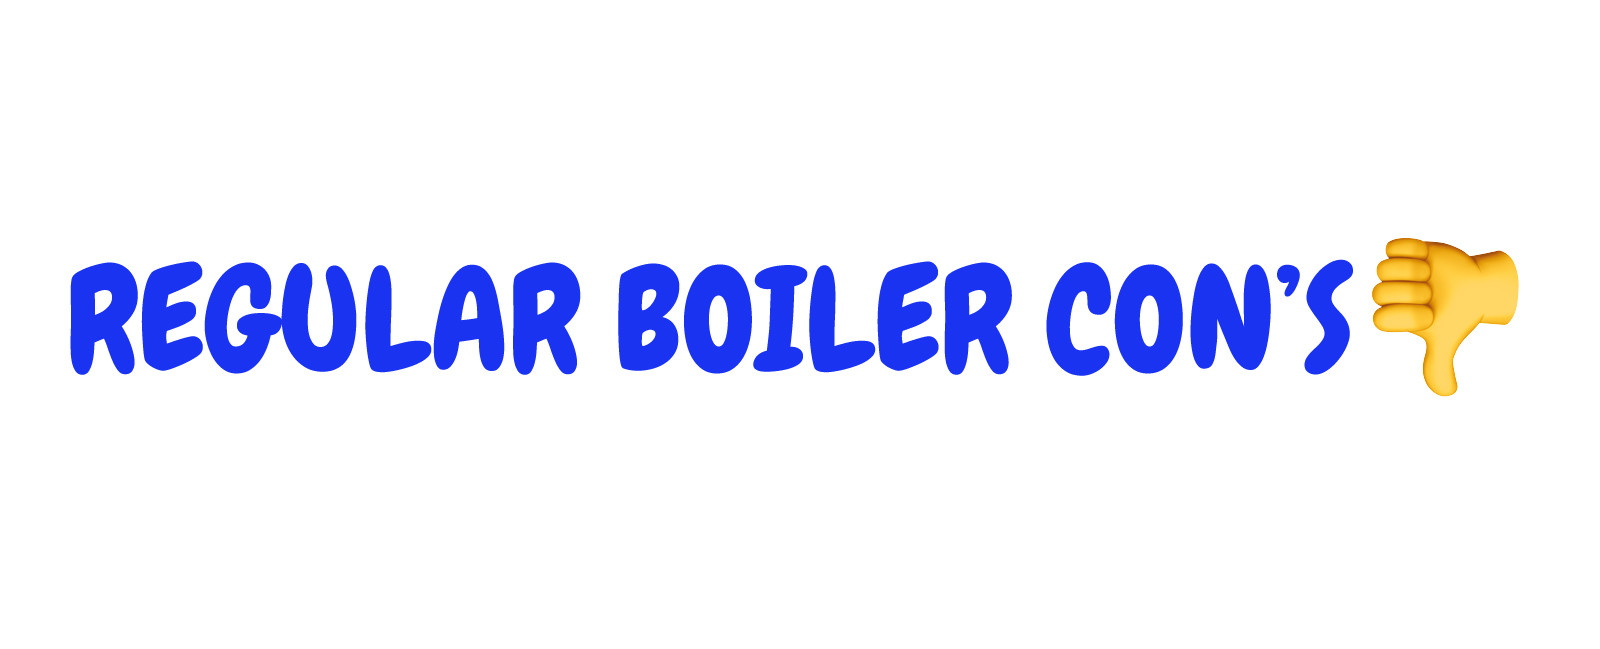 Regular boiler cons